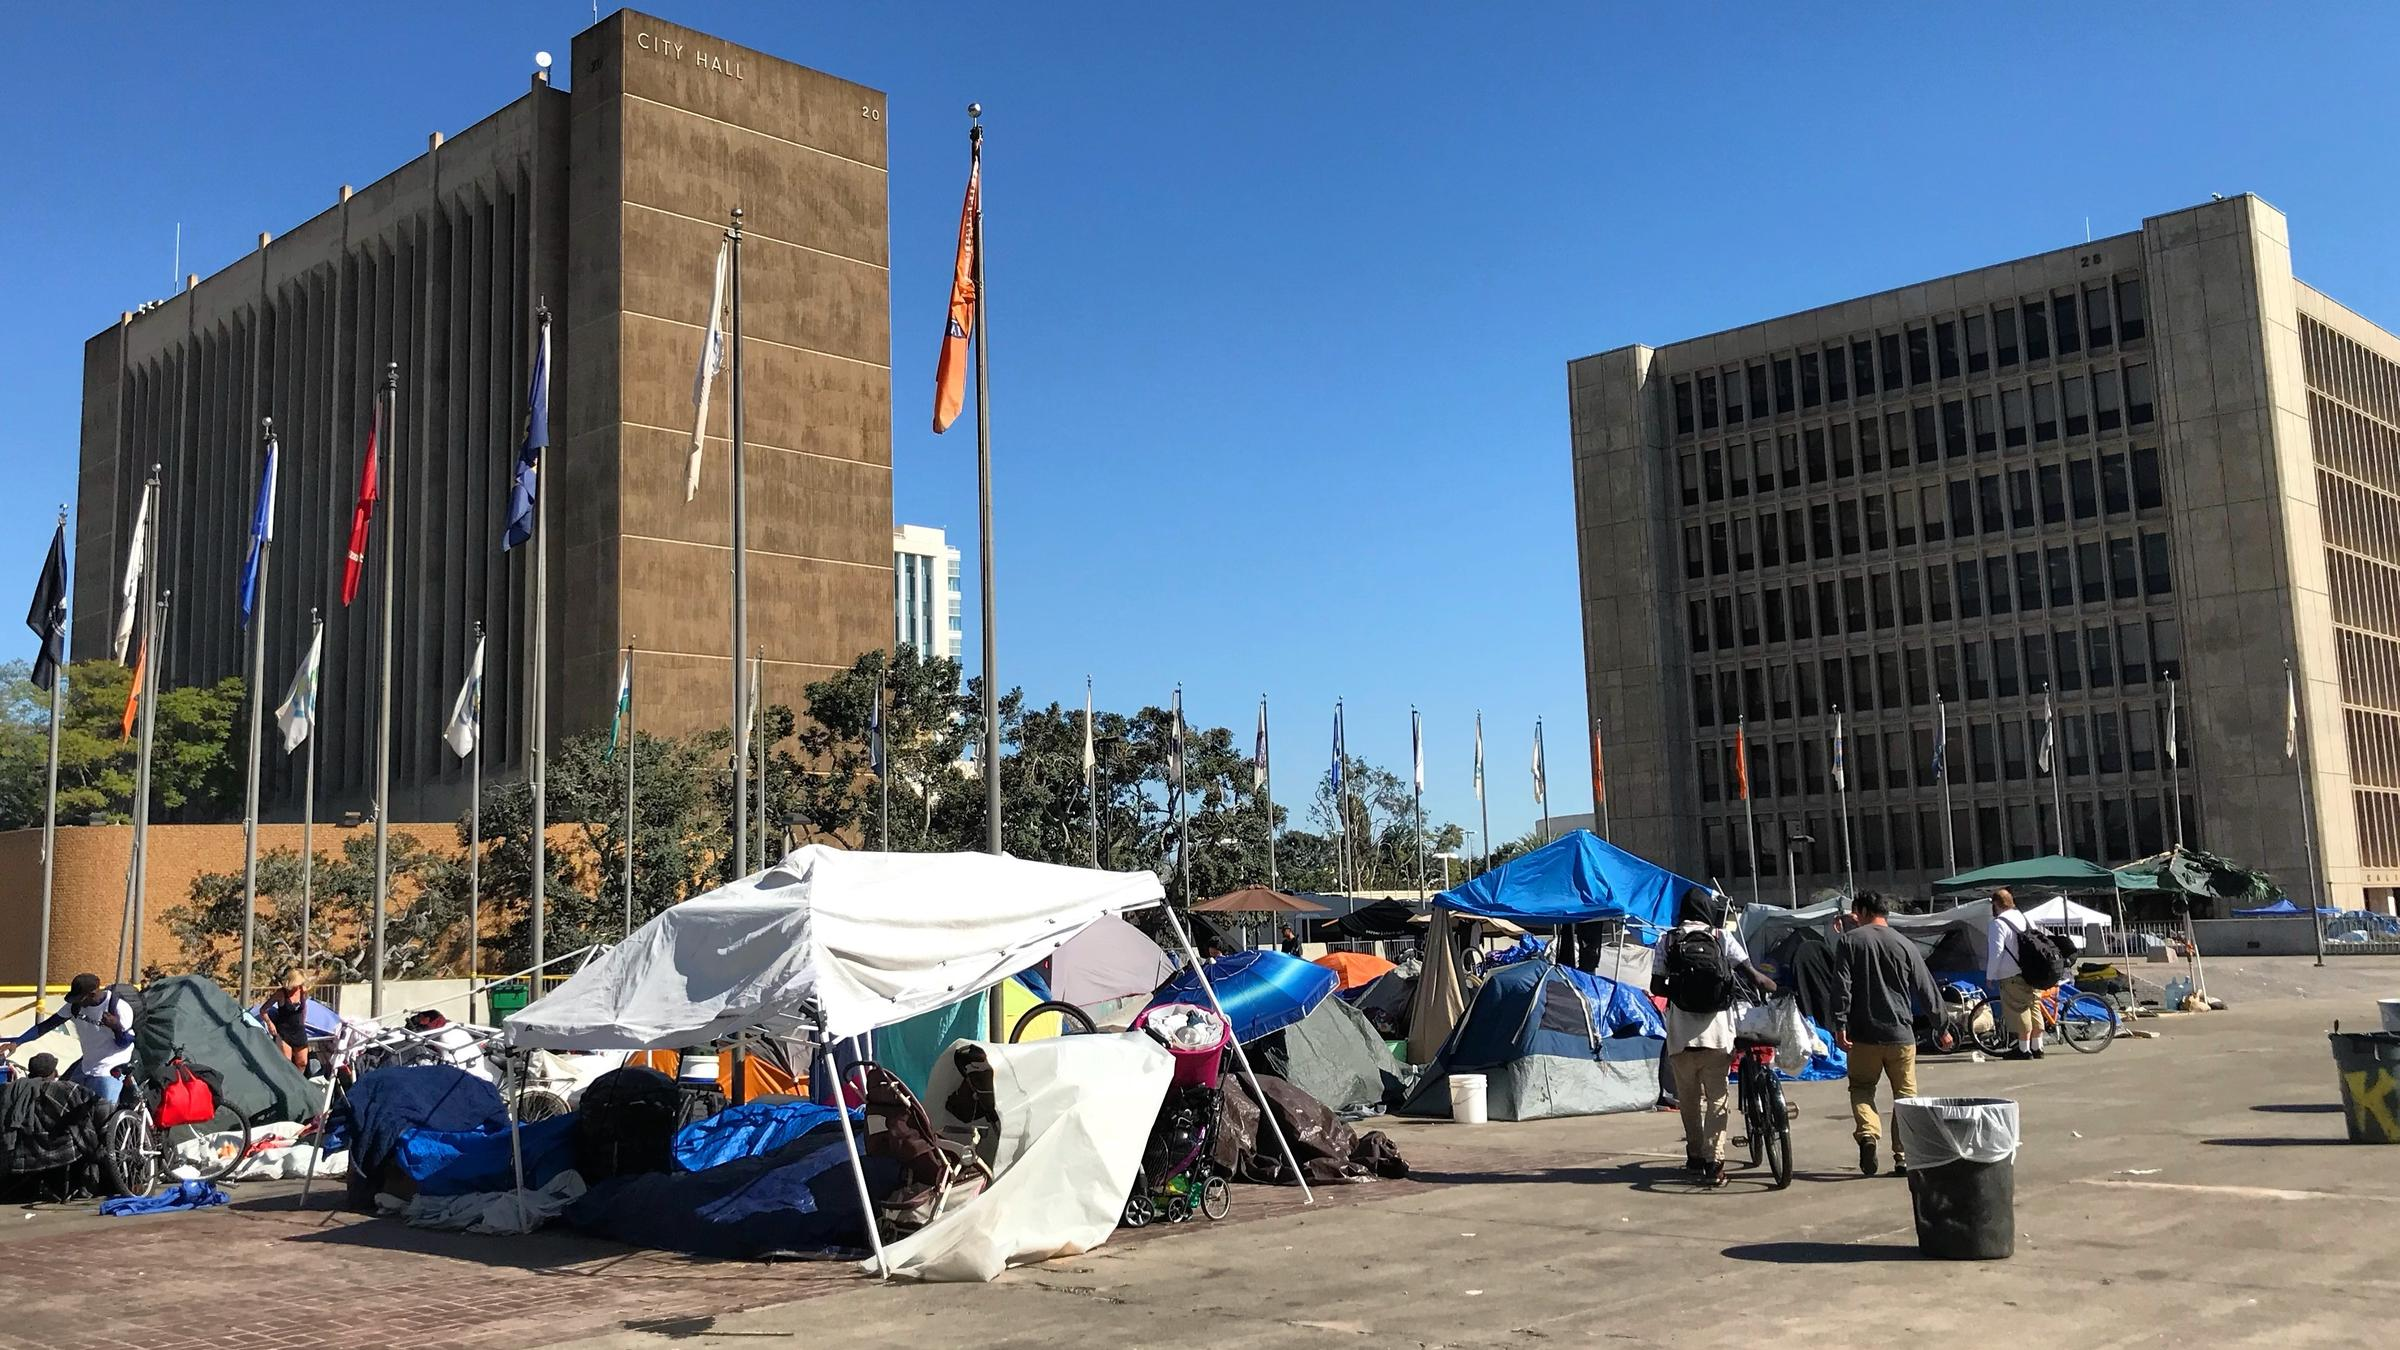 Orange County officials rescinded plans to establish three temporary shelters on county land near the ocean. Two blocks away from the hearing in Santa Ana a sprawling homeless encampment remains in front of the courthouse